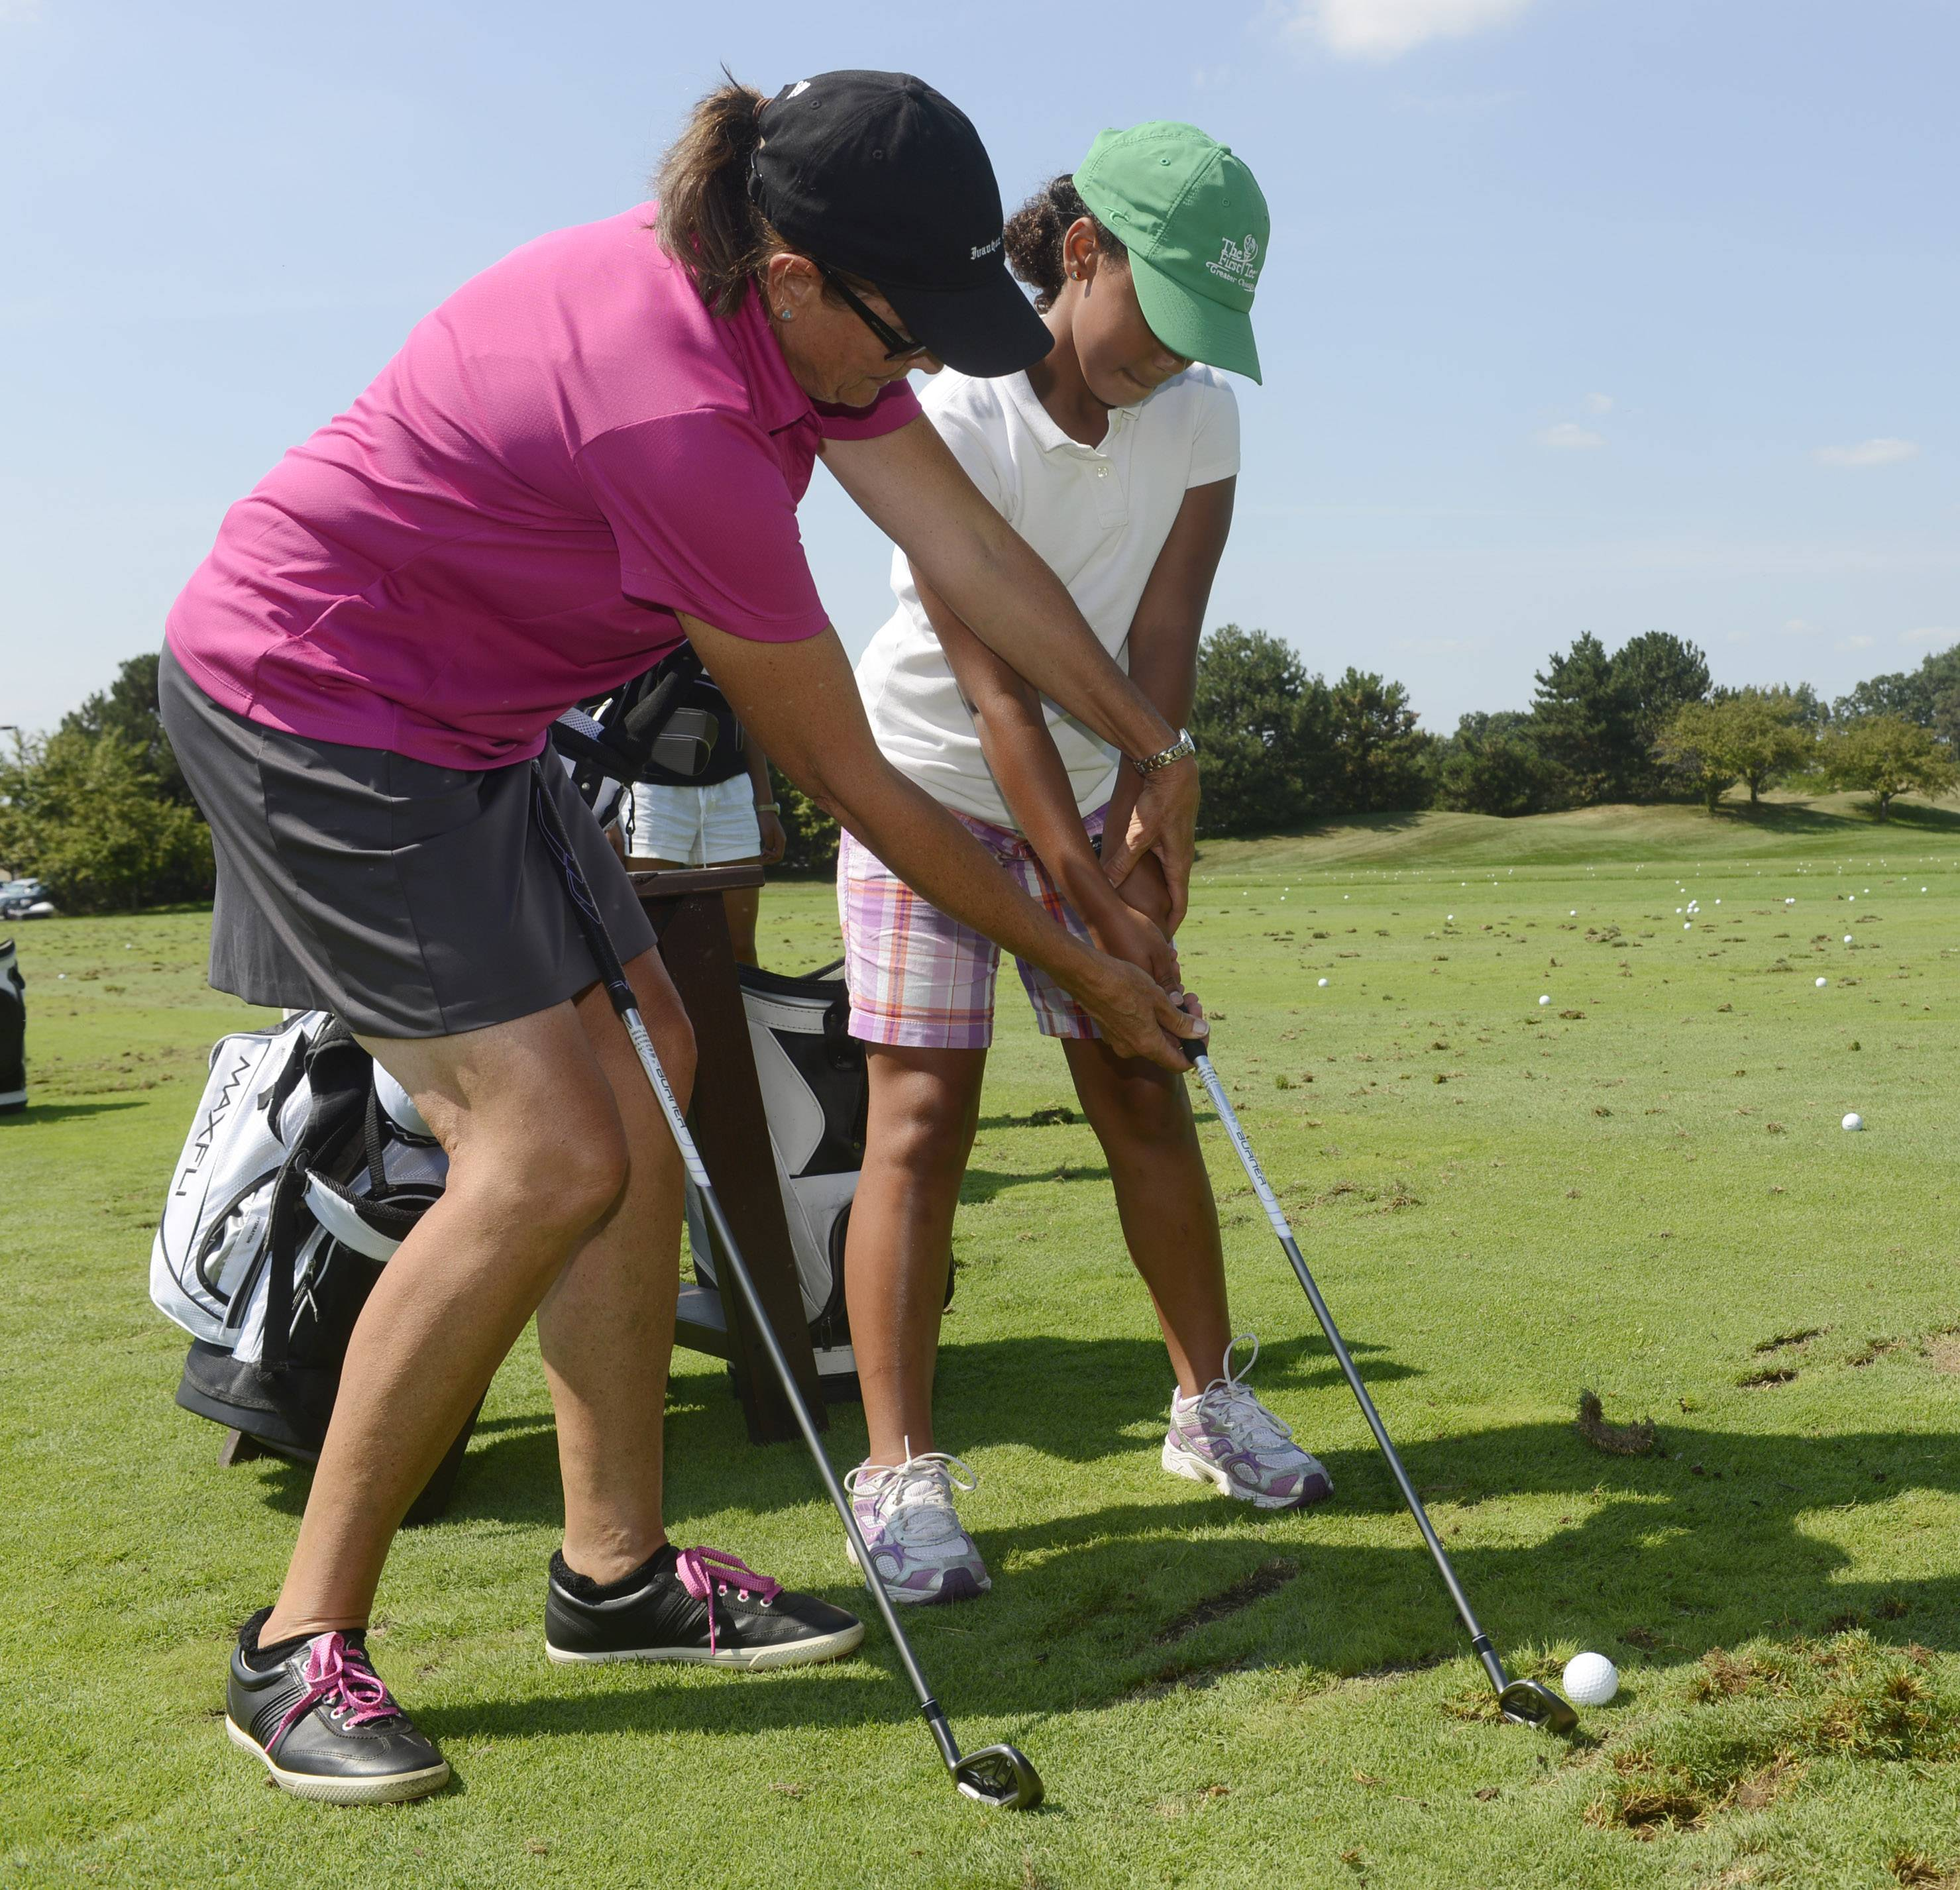 First Tee programs aim to build character, instill life-enhancing values and promote healthy choices through the game of golf.